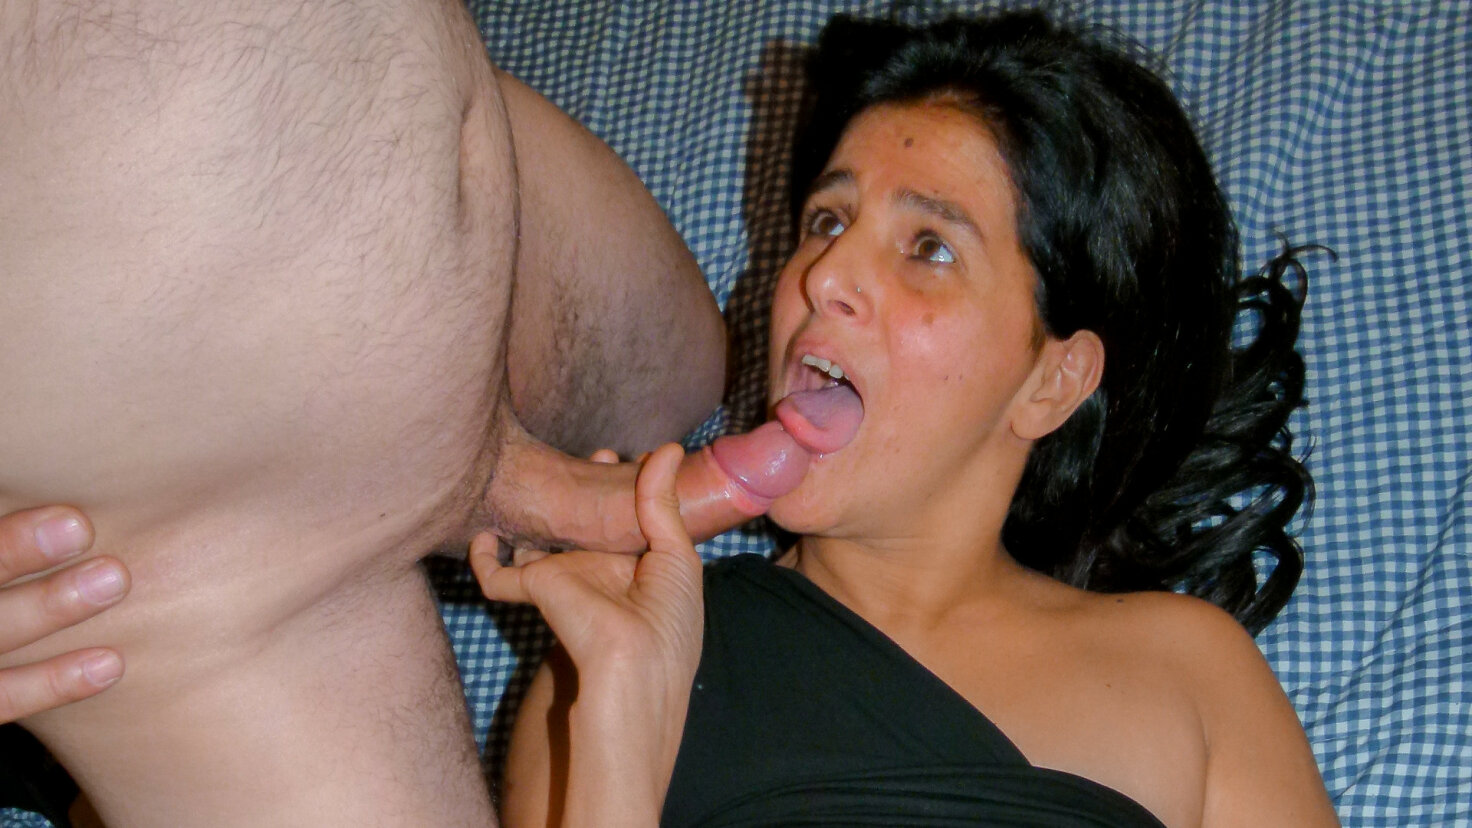 Cum in mouth splash & fuck with slutty Italian mature brunette in her 40s